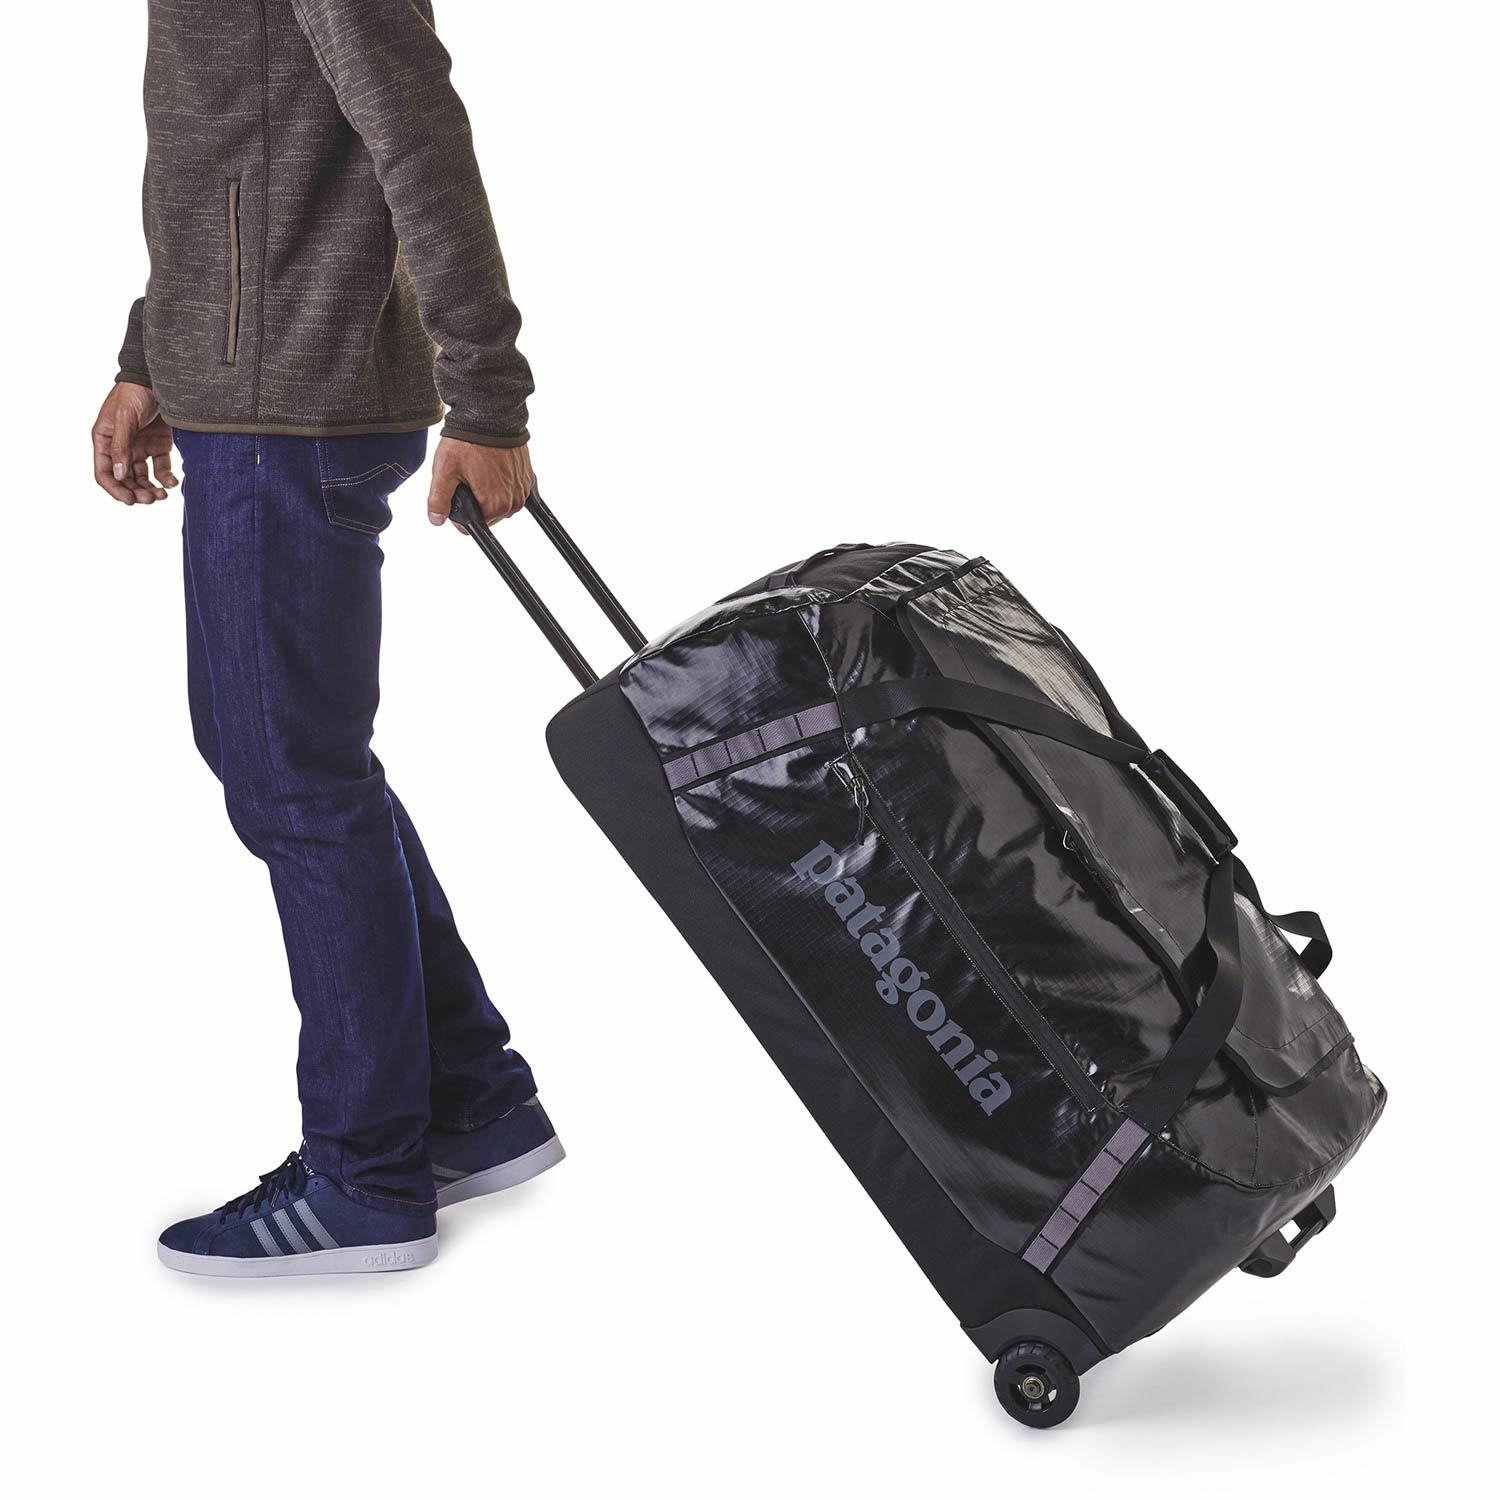 a9d6e351fecf 120L Black Hole Wheeled Duffel Bag Enlarged view of picture